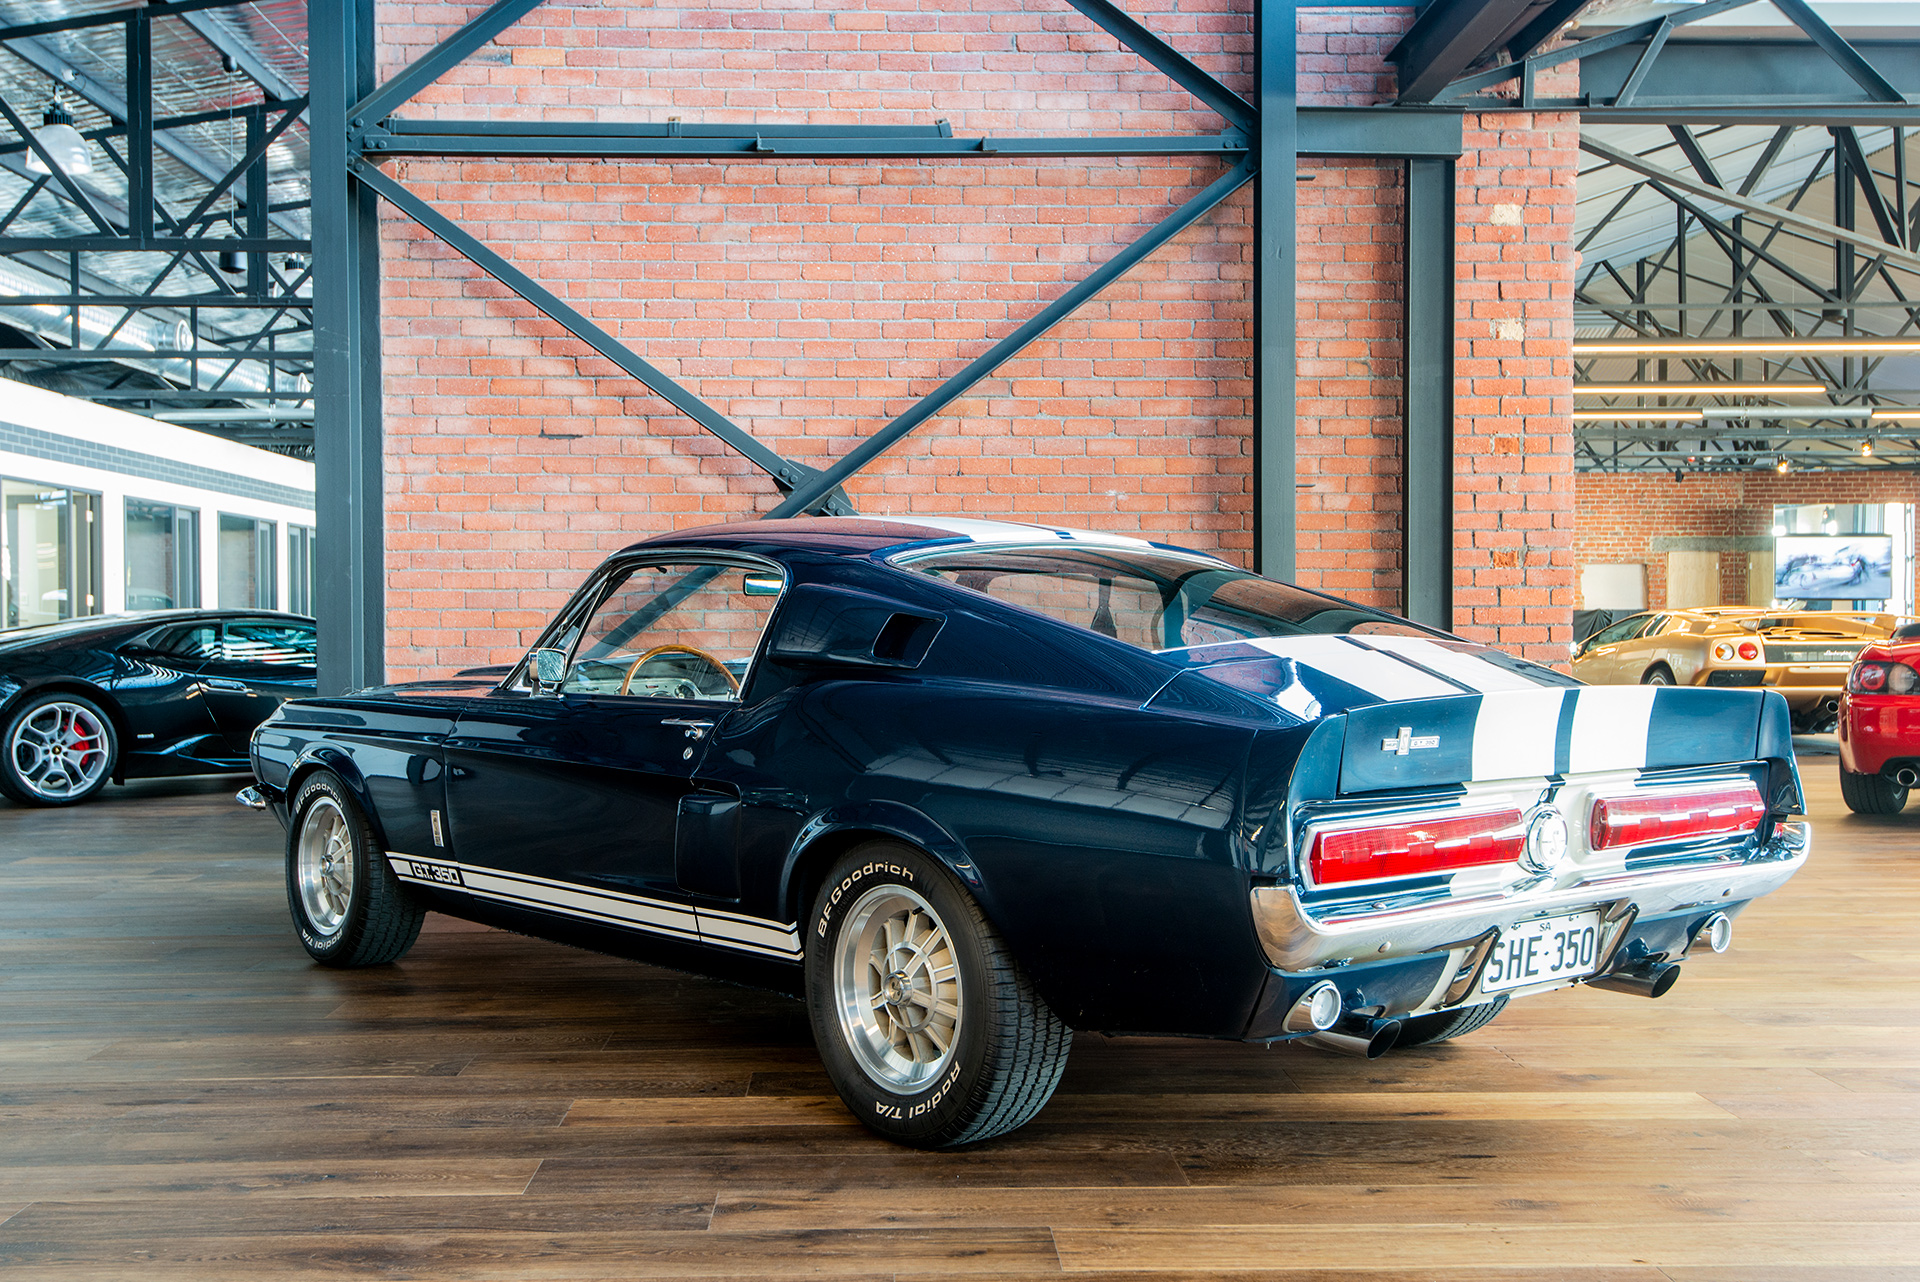 1967 Mustang Fastback >> 1967 Shelby Cobra GT350 Fastback Manual - Richmonds - Classic and Prestige Cars - Storage and ...